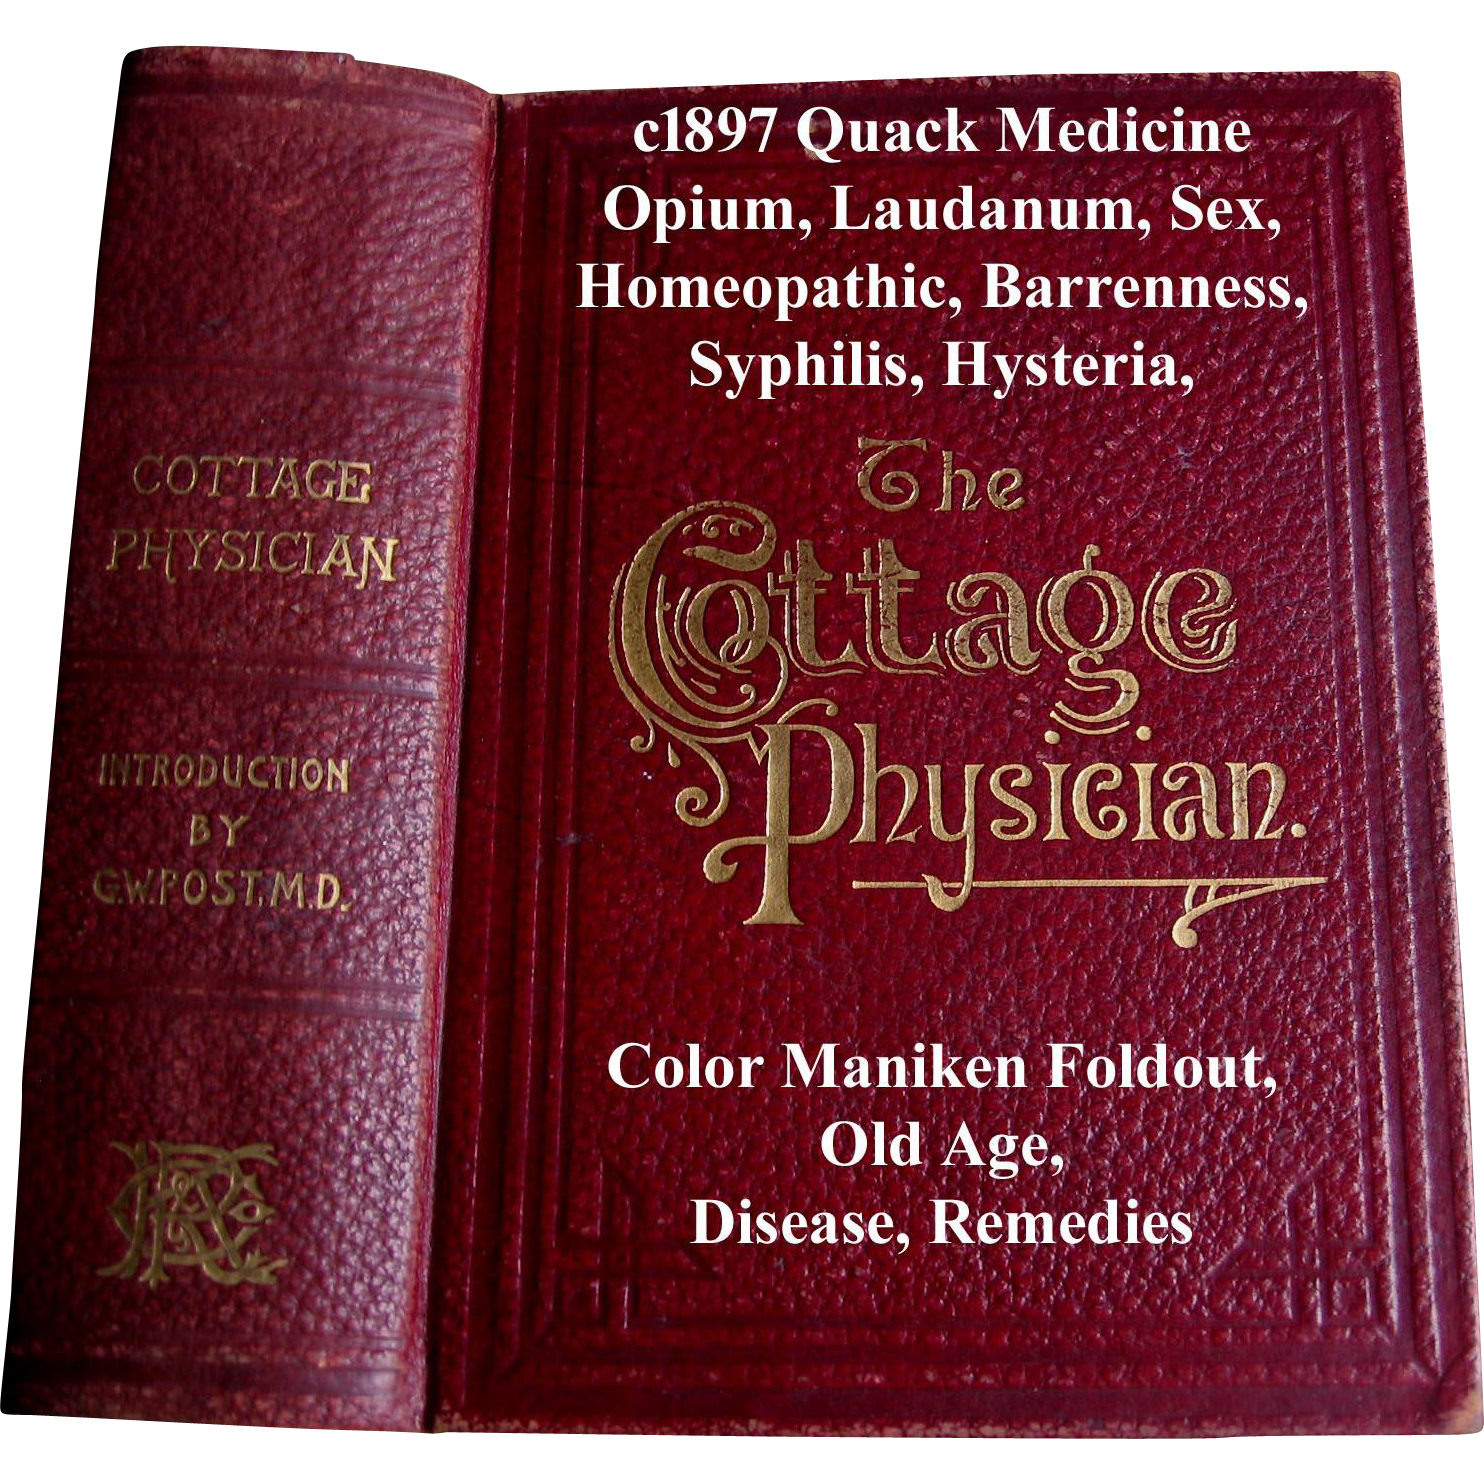 c1897 The Cottage Physician Quack Medicine Medical Opium Laudanum Homeopathic Sex Barrenness Masturbation Disease Remedies Syphilis Hysteria Scientific Phrenology Toilet Cosmetic Recipes Hydropathy Electrical Stimulation